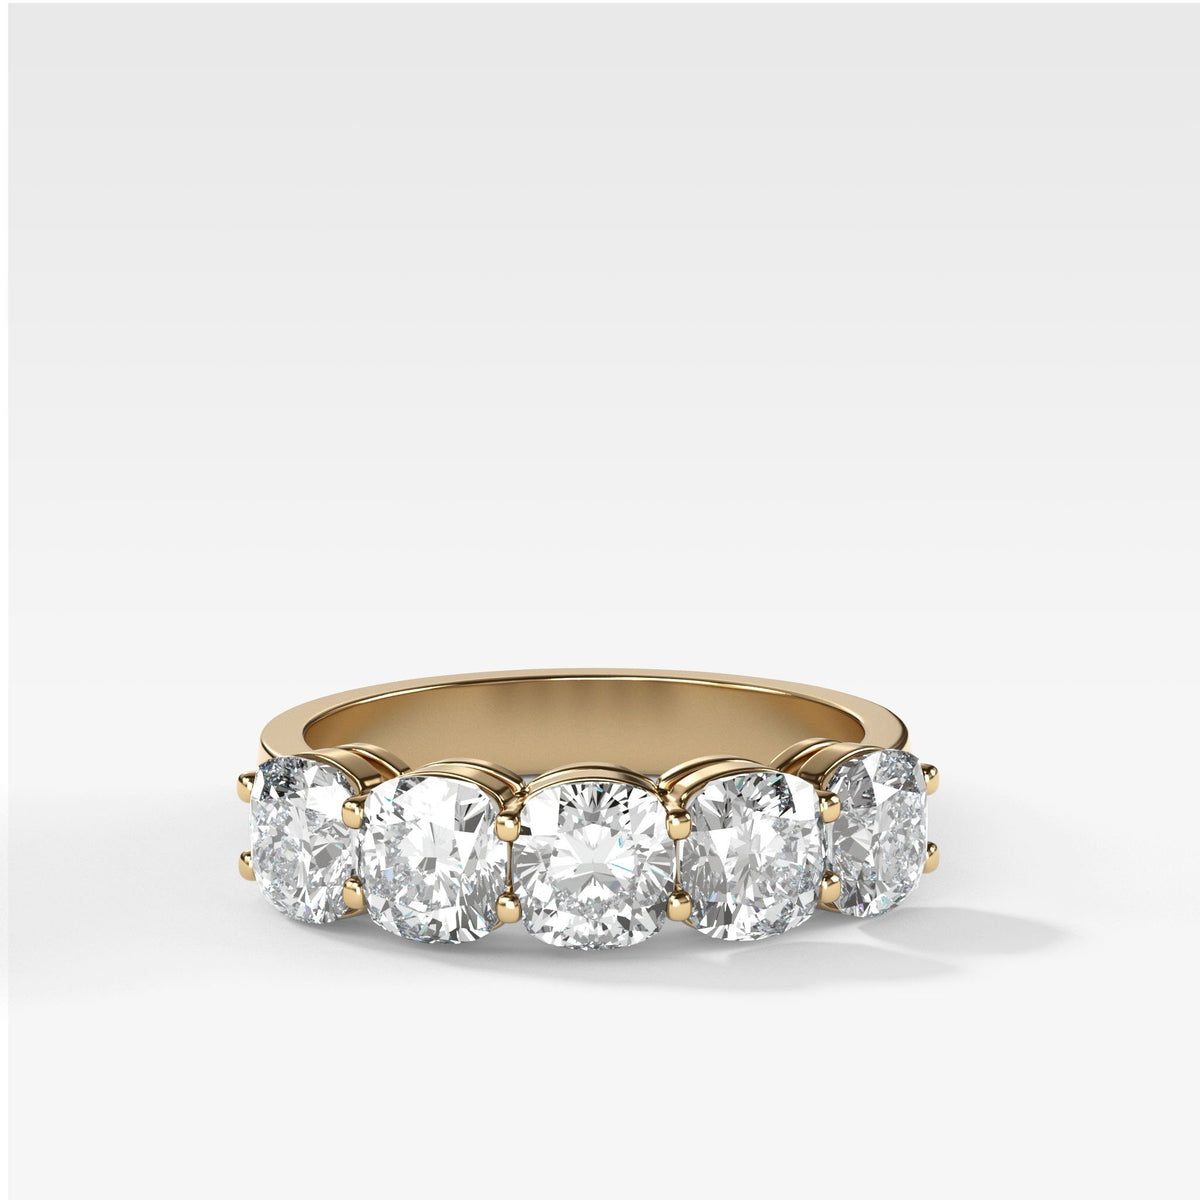 Five Stone Cushion Cut Diamond Band Ring in Yellow Gold by Good Stone